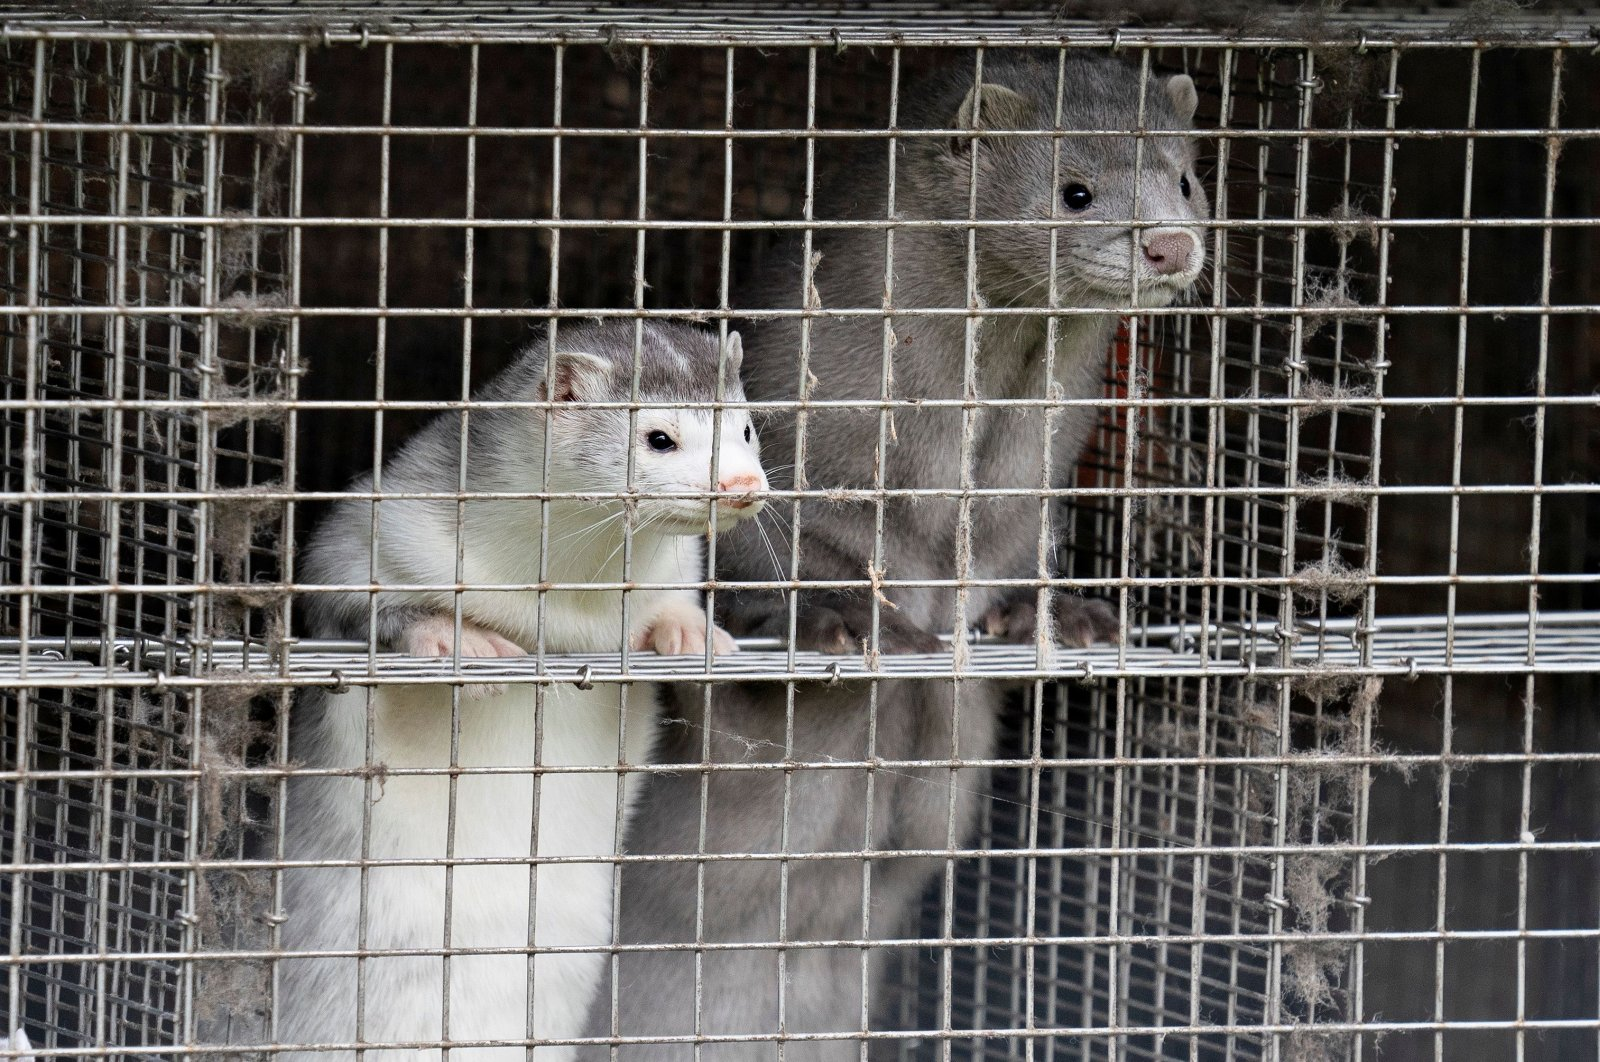 Caged minks look on after police officers arrived at Thorbjorn Jepsen's mink farm, amid the coronavirus disease (COVID-19) outbreak, in Gjoel, Denmark, Oct. 9, 2020. (Reuters Photo)